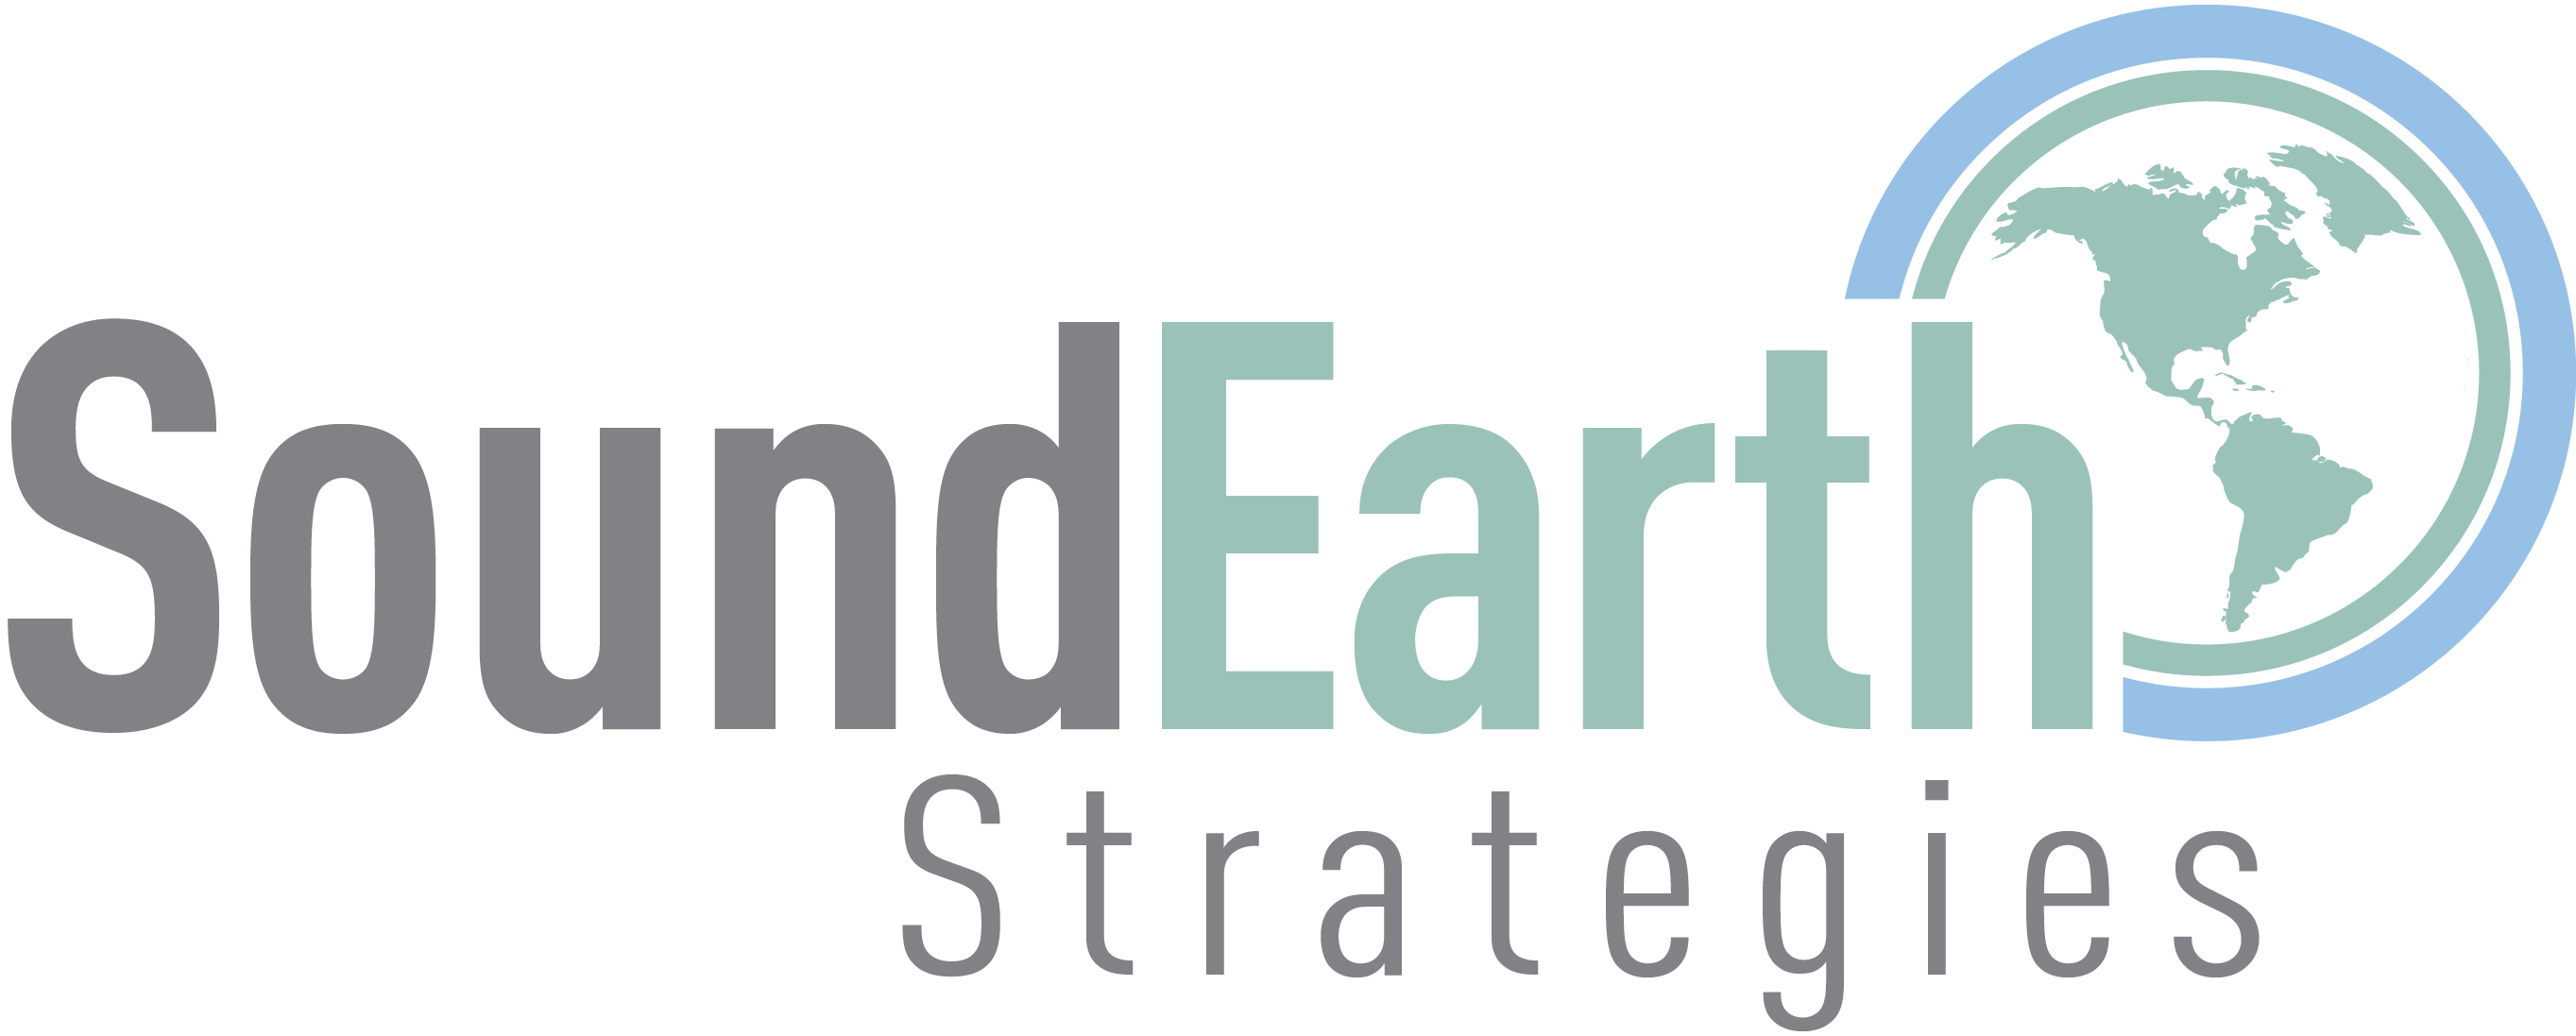 Sound Earth Strategies logo